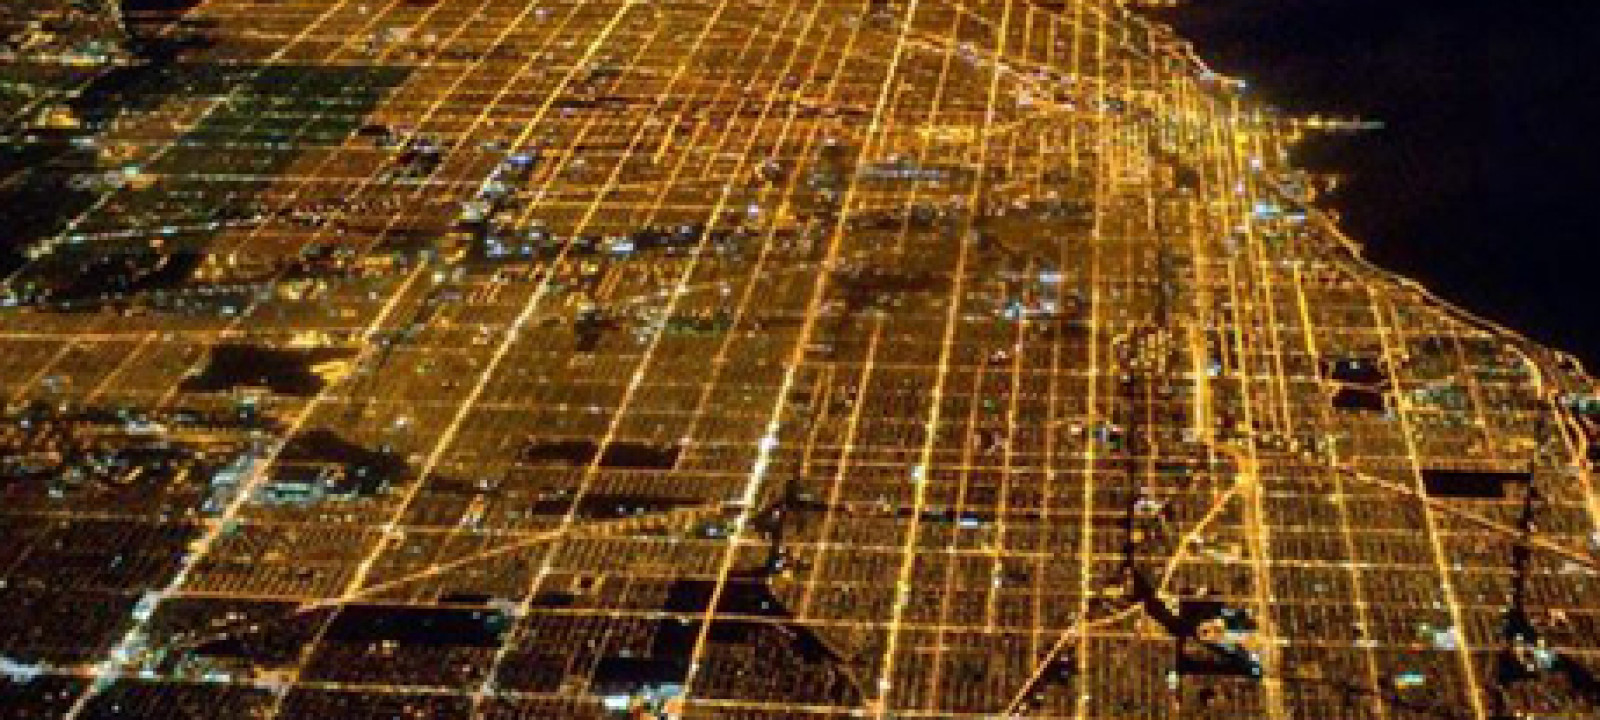 Chicago Grid System, II